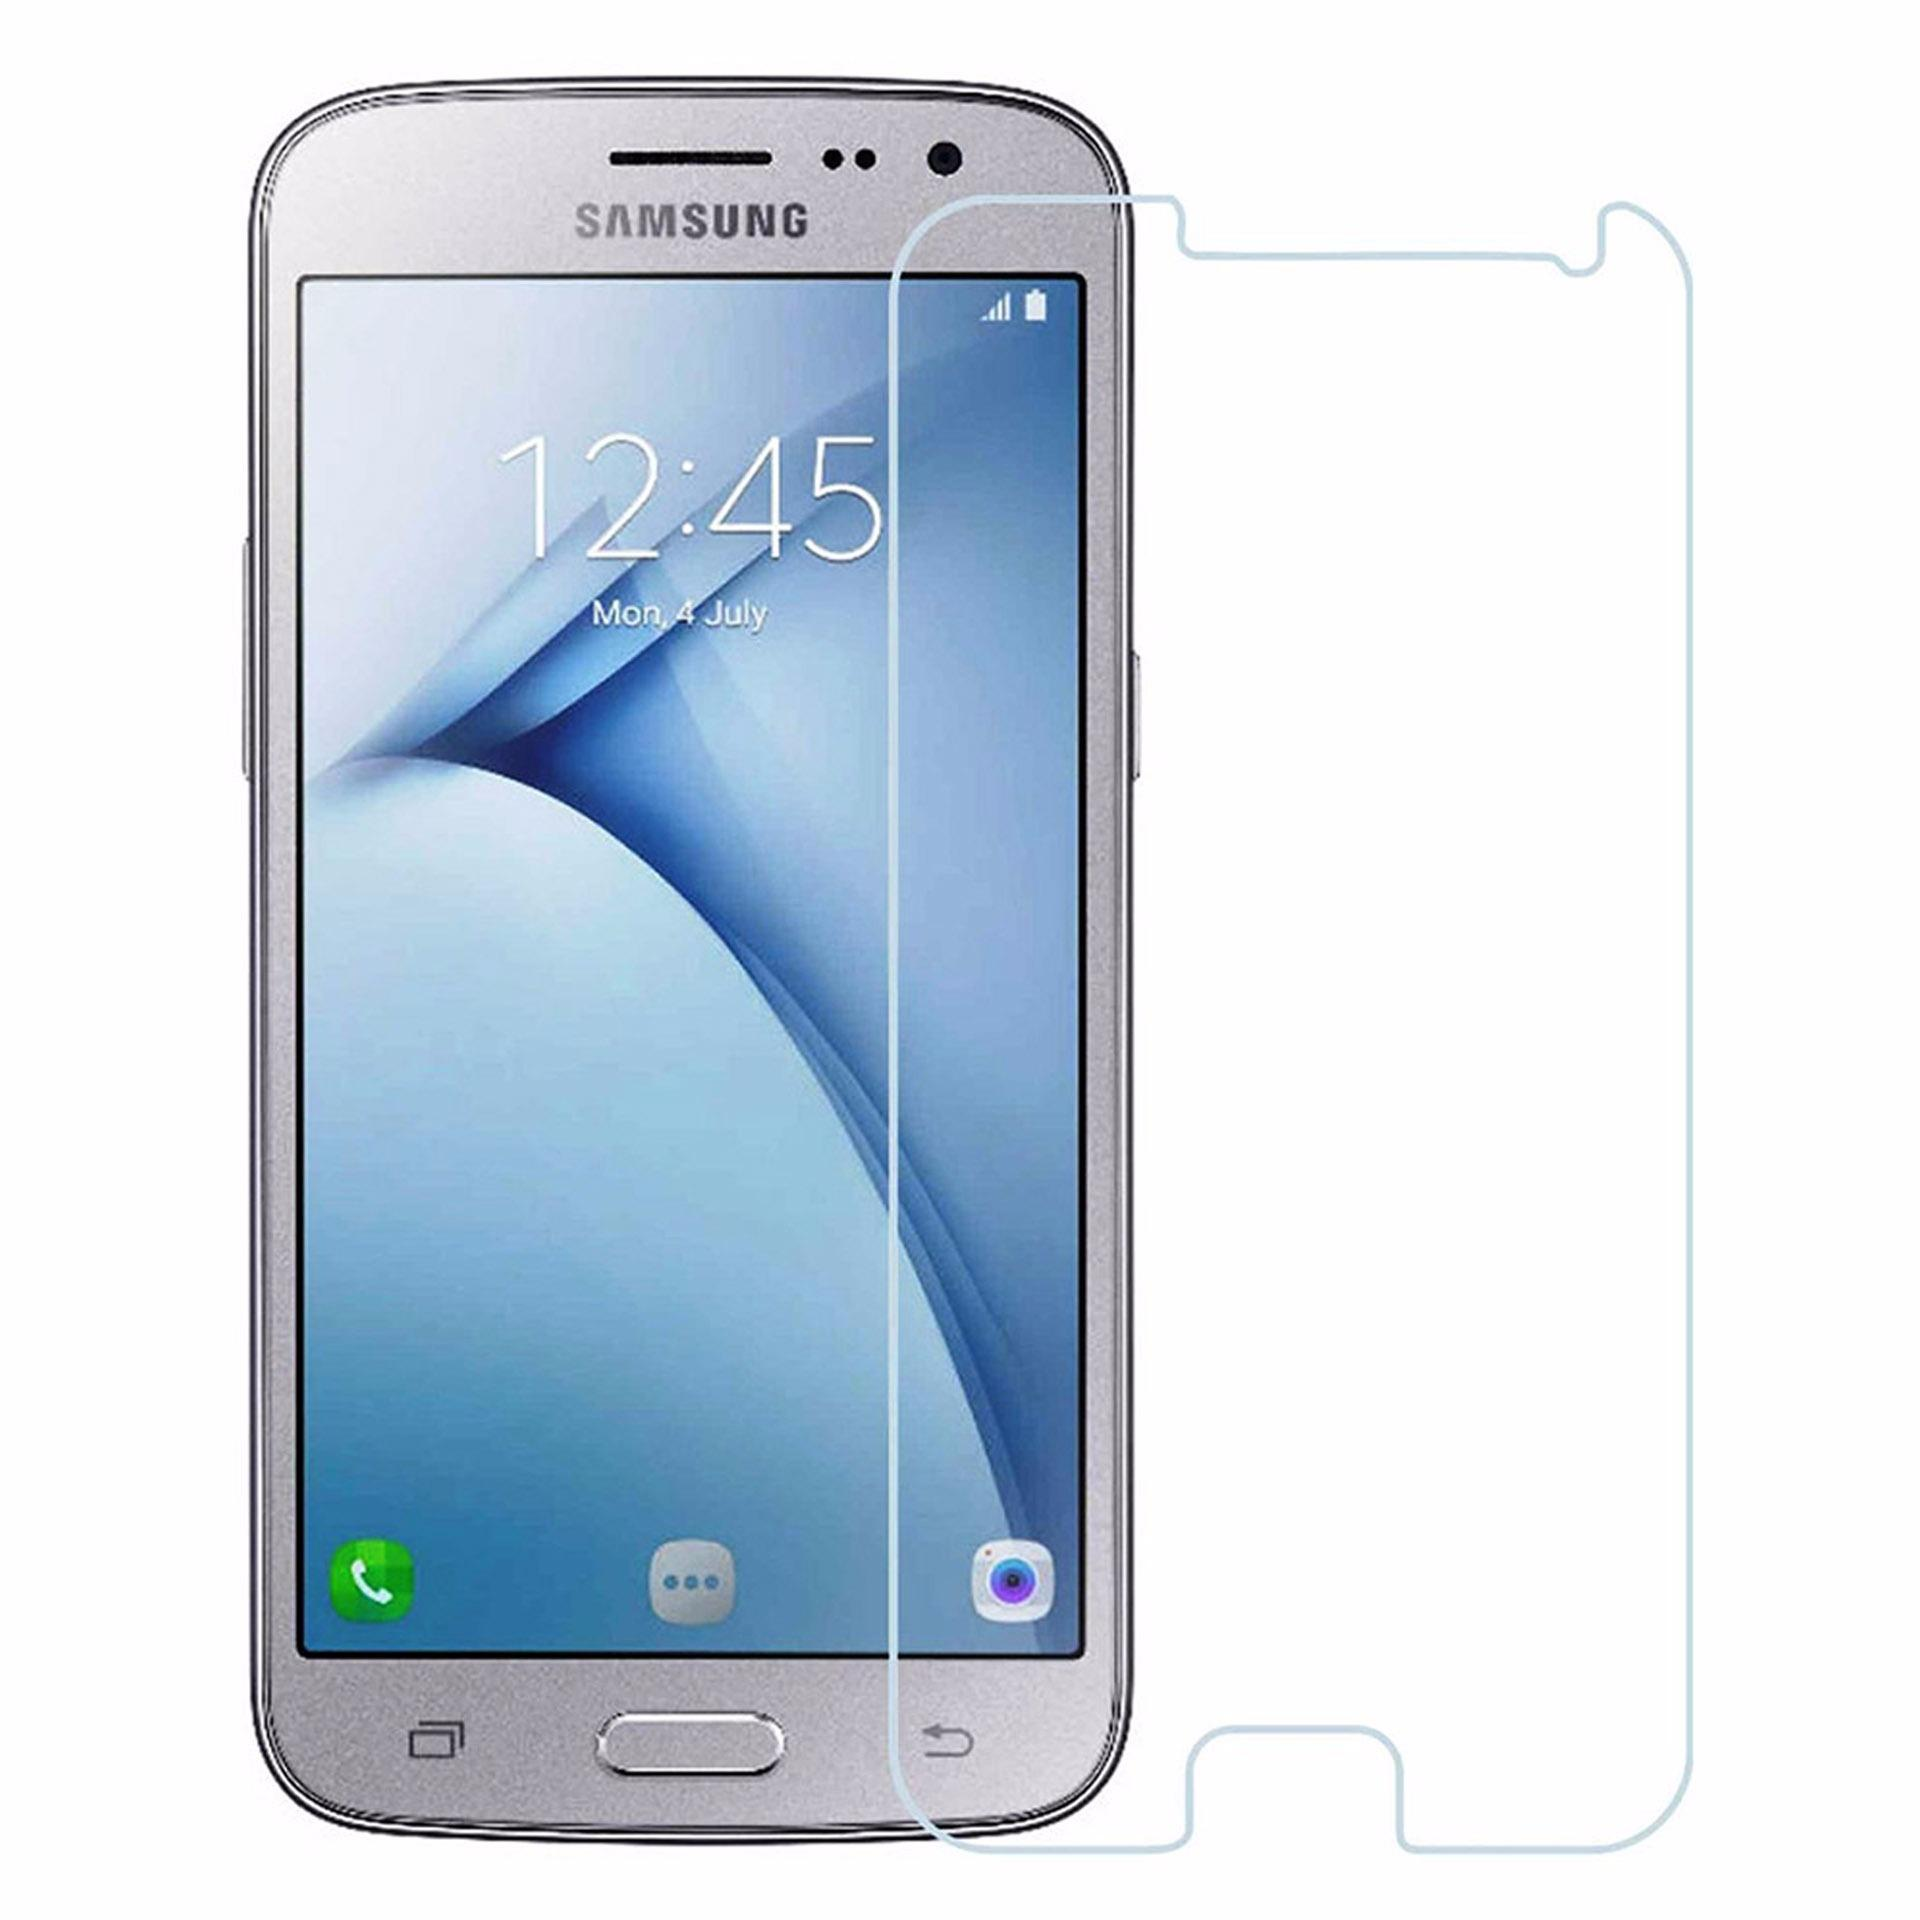 Samsung Galaxy Core Prime Duos Tempered Glass Screen Protector 032mm Flip Cover Blaupunkt Sonido X1 Vn J2 2016 J210 4g Lte